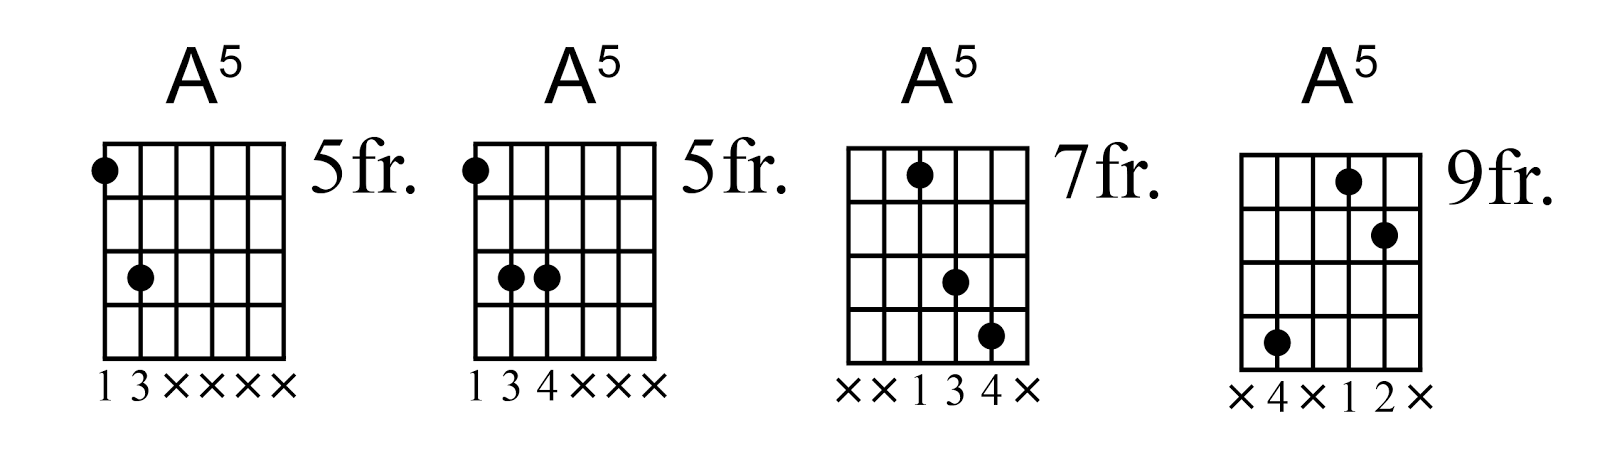 A5 Chord Images Chord Guitar Finger Position